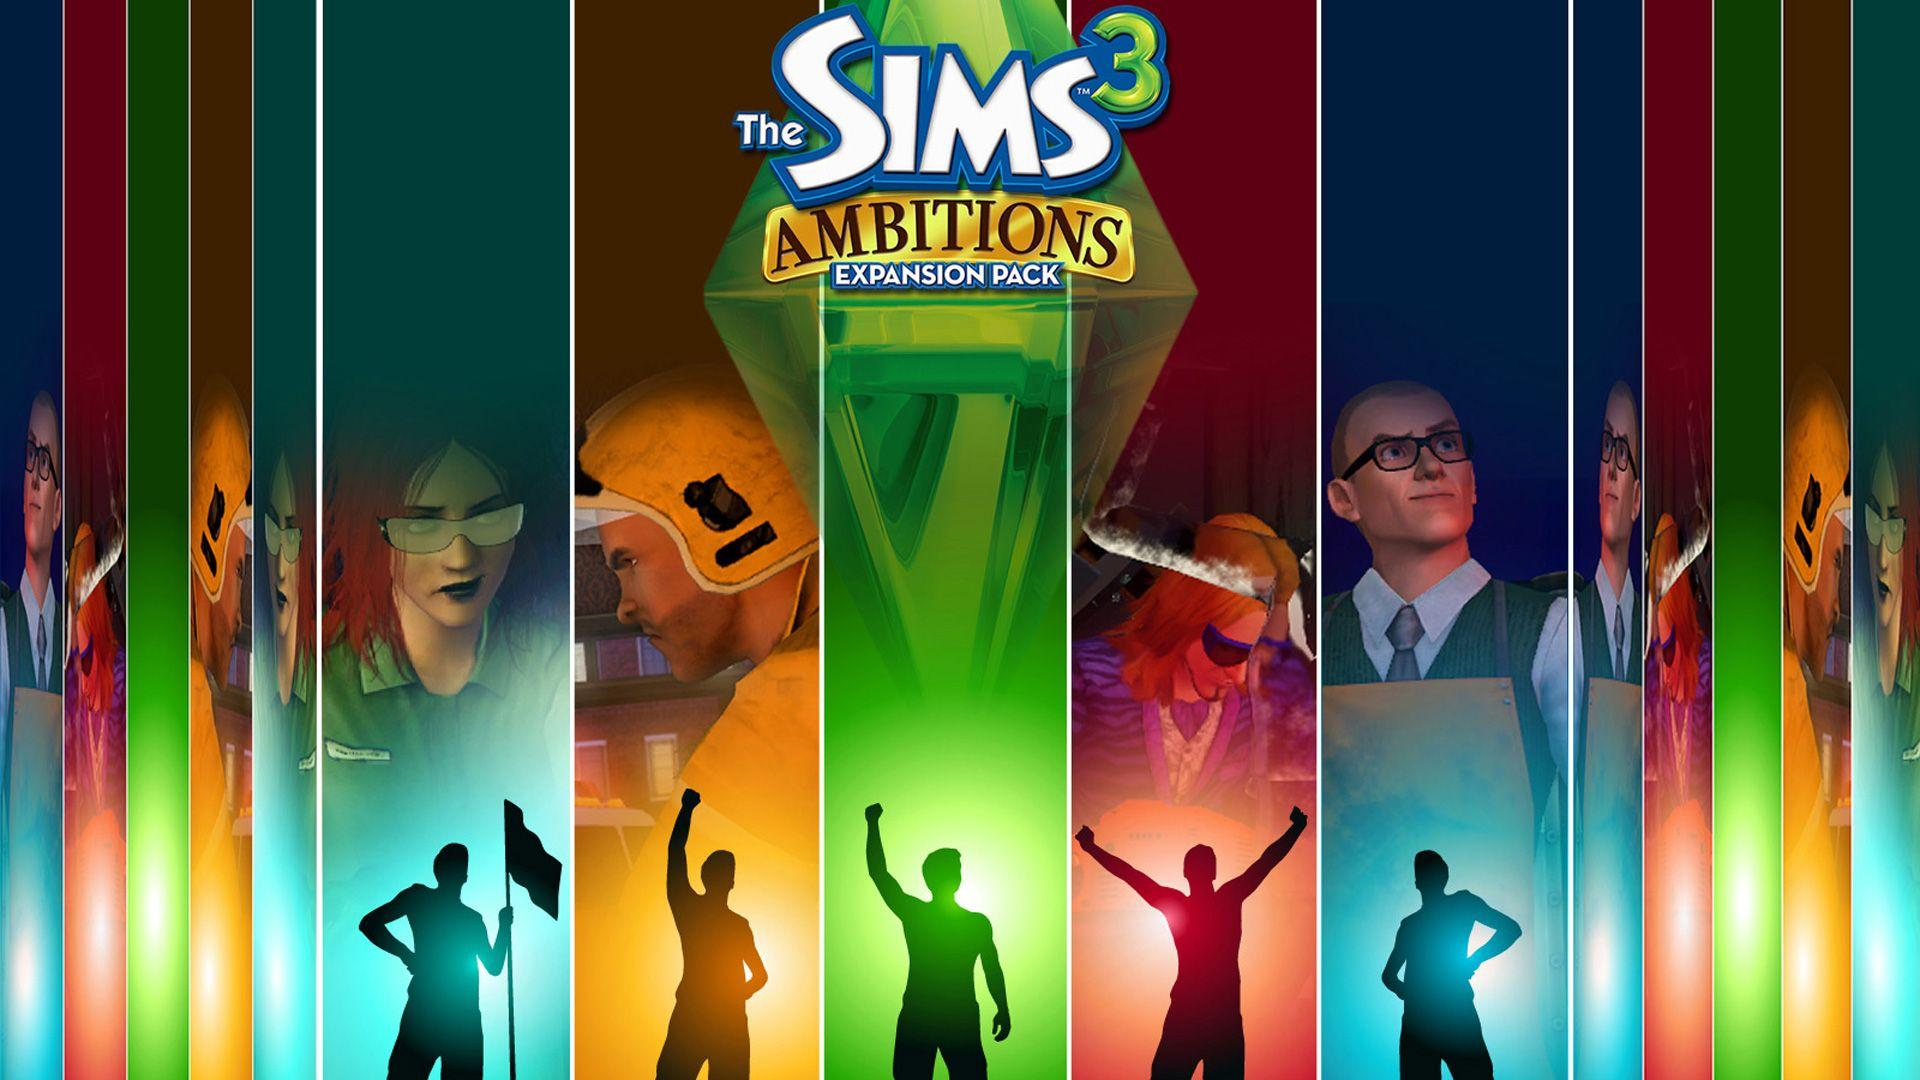 Free The Sims 3 Wallpapers in 1920x1080